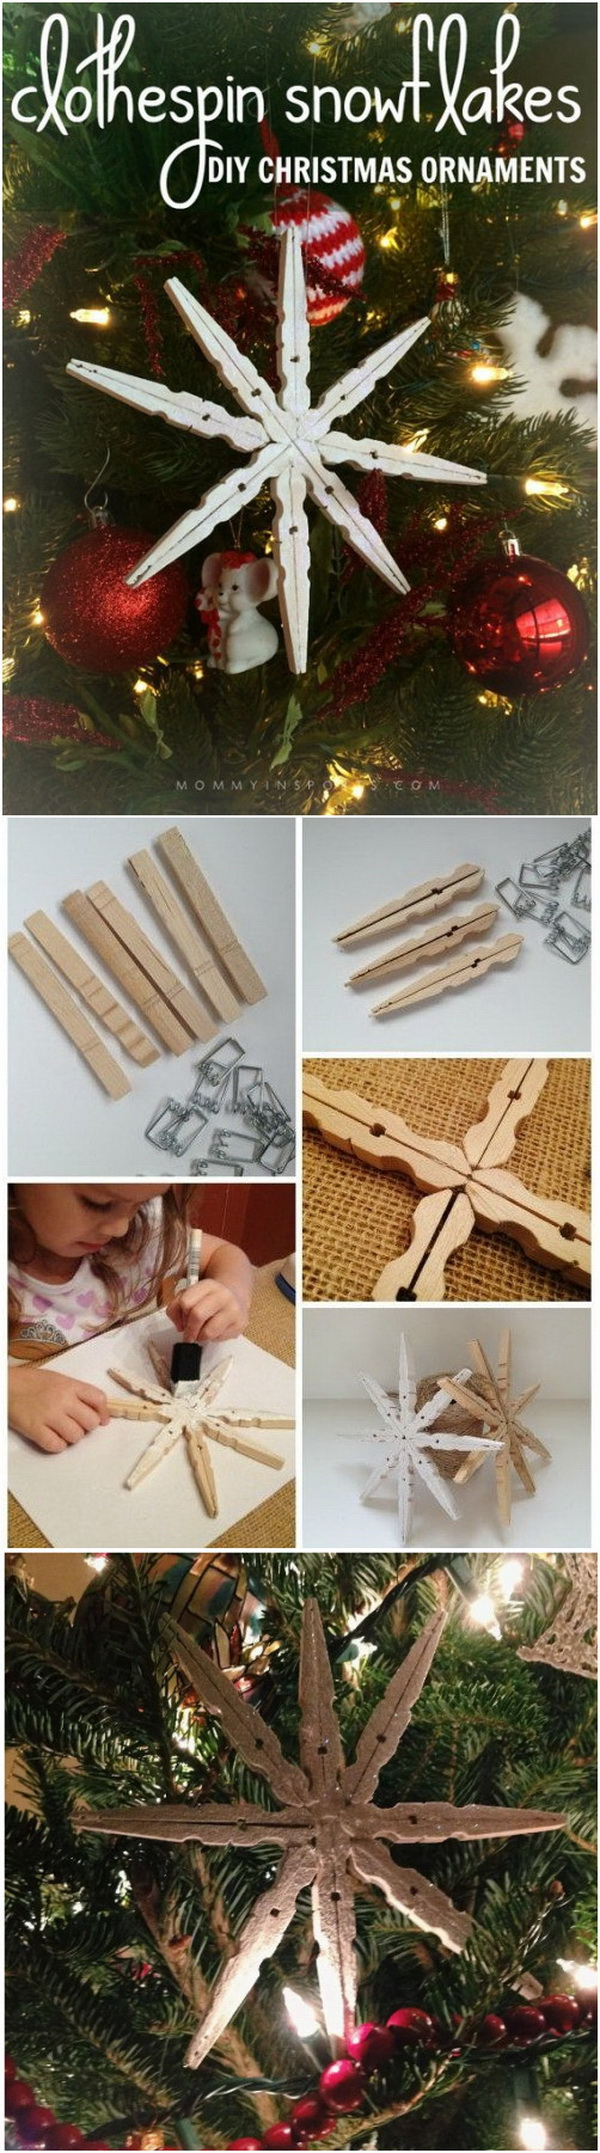 DIY Wooden Clothespin Snowflakes Ornaments.